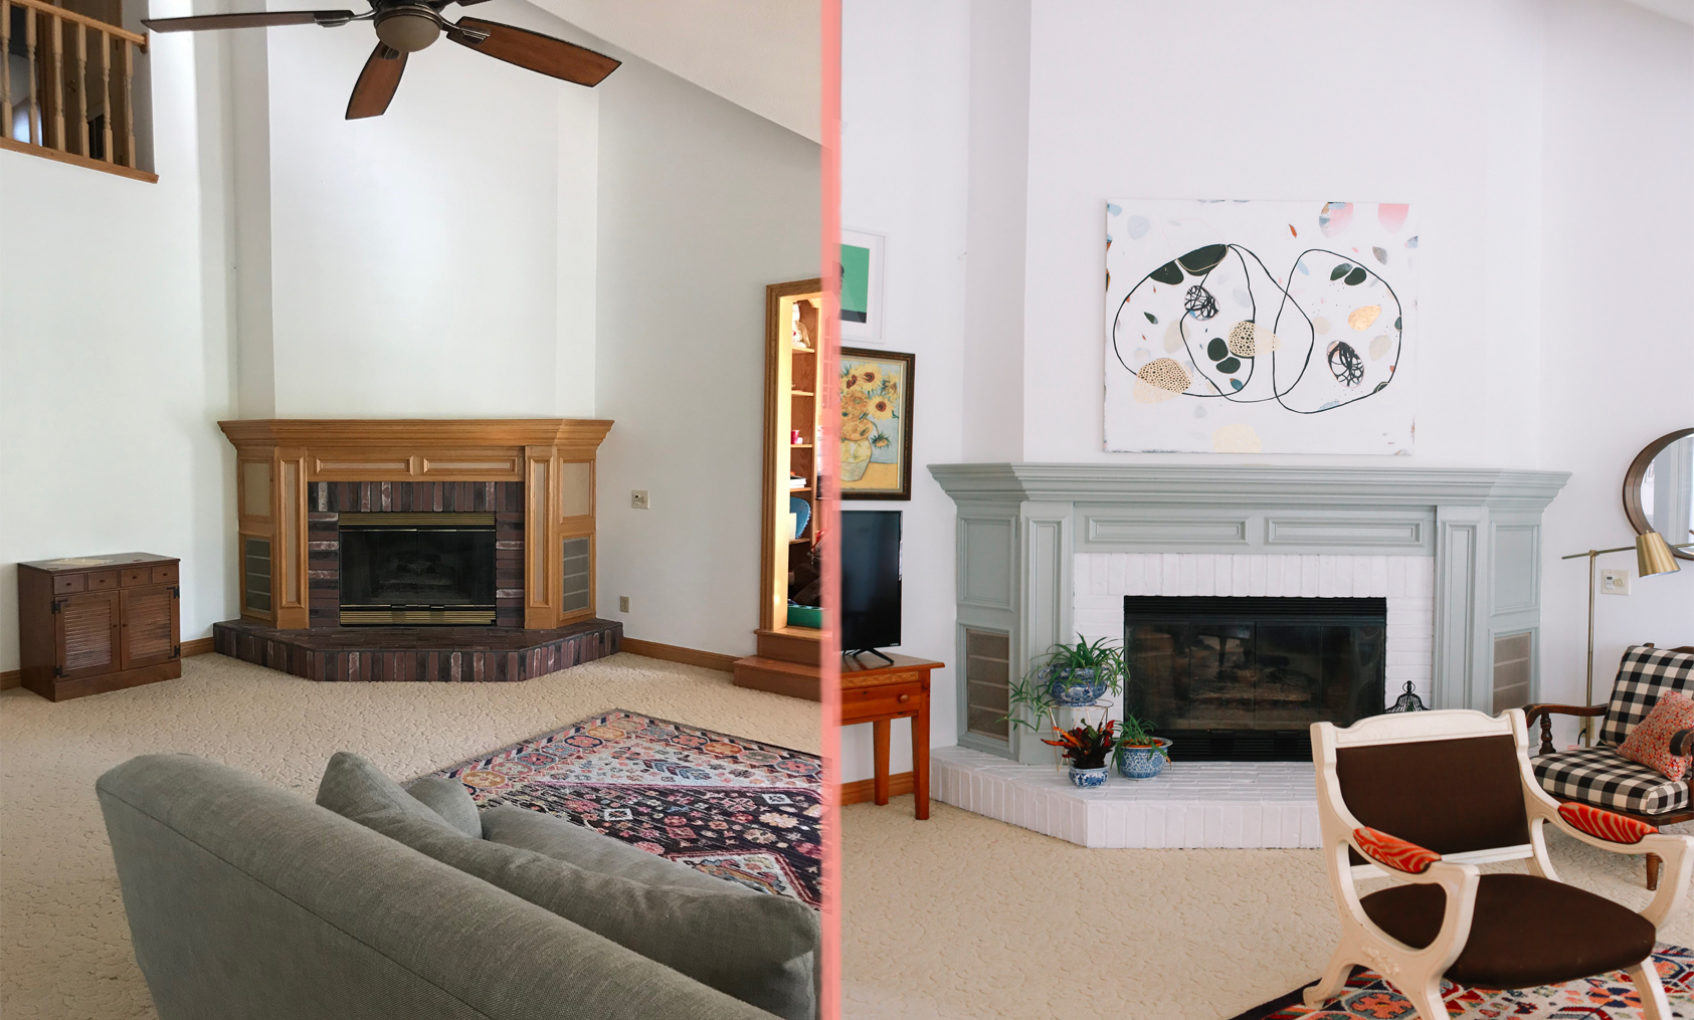 Before U0026 After: A 1990s Suburban Home Gets A Colorful Makeover